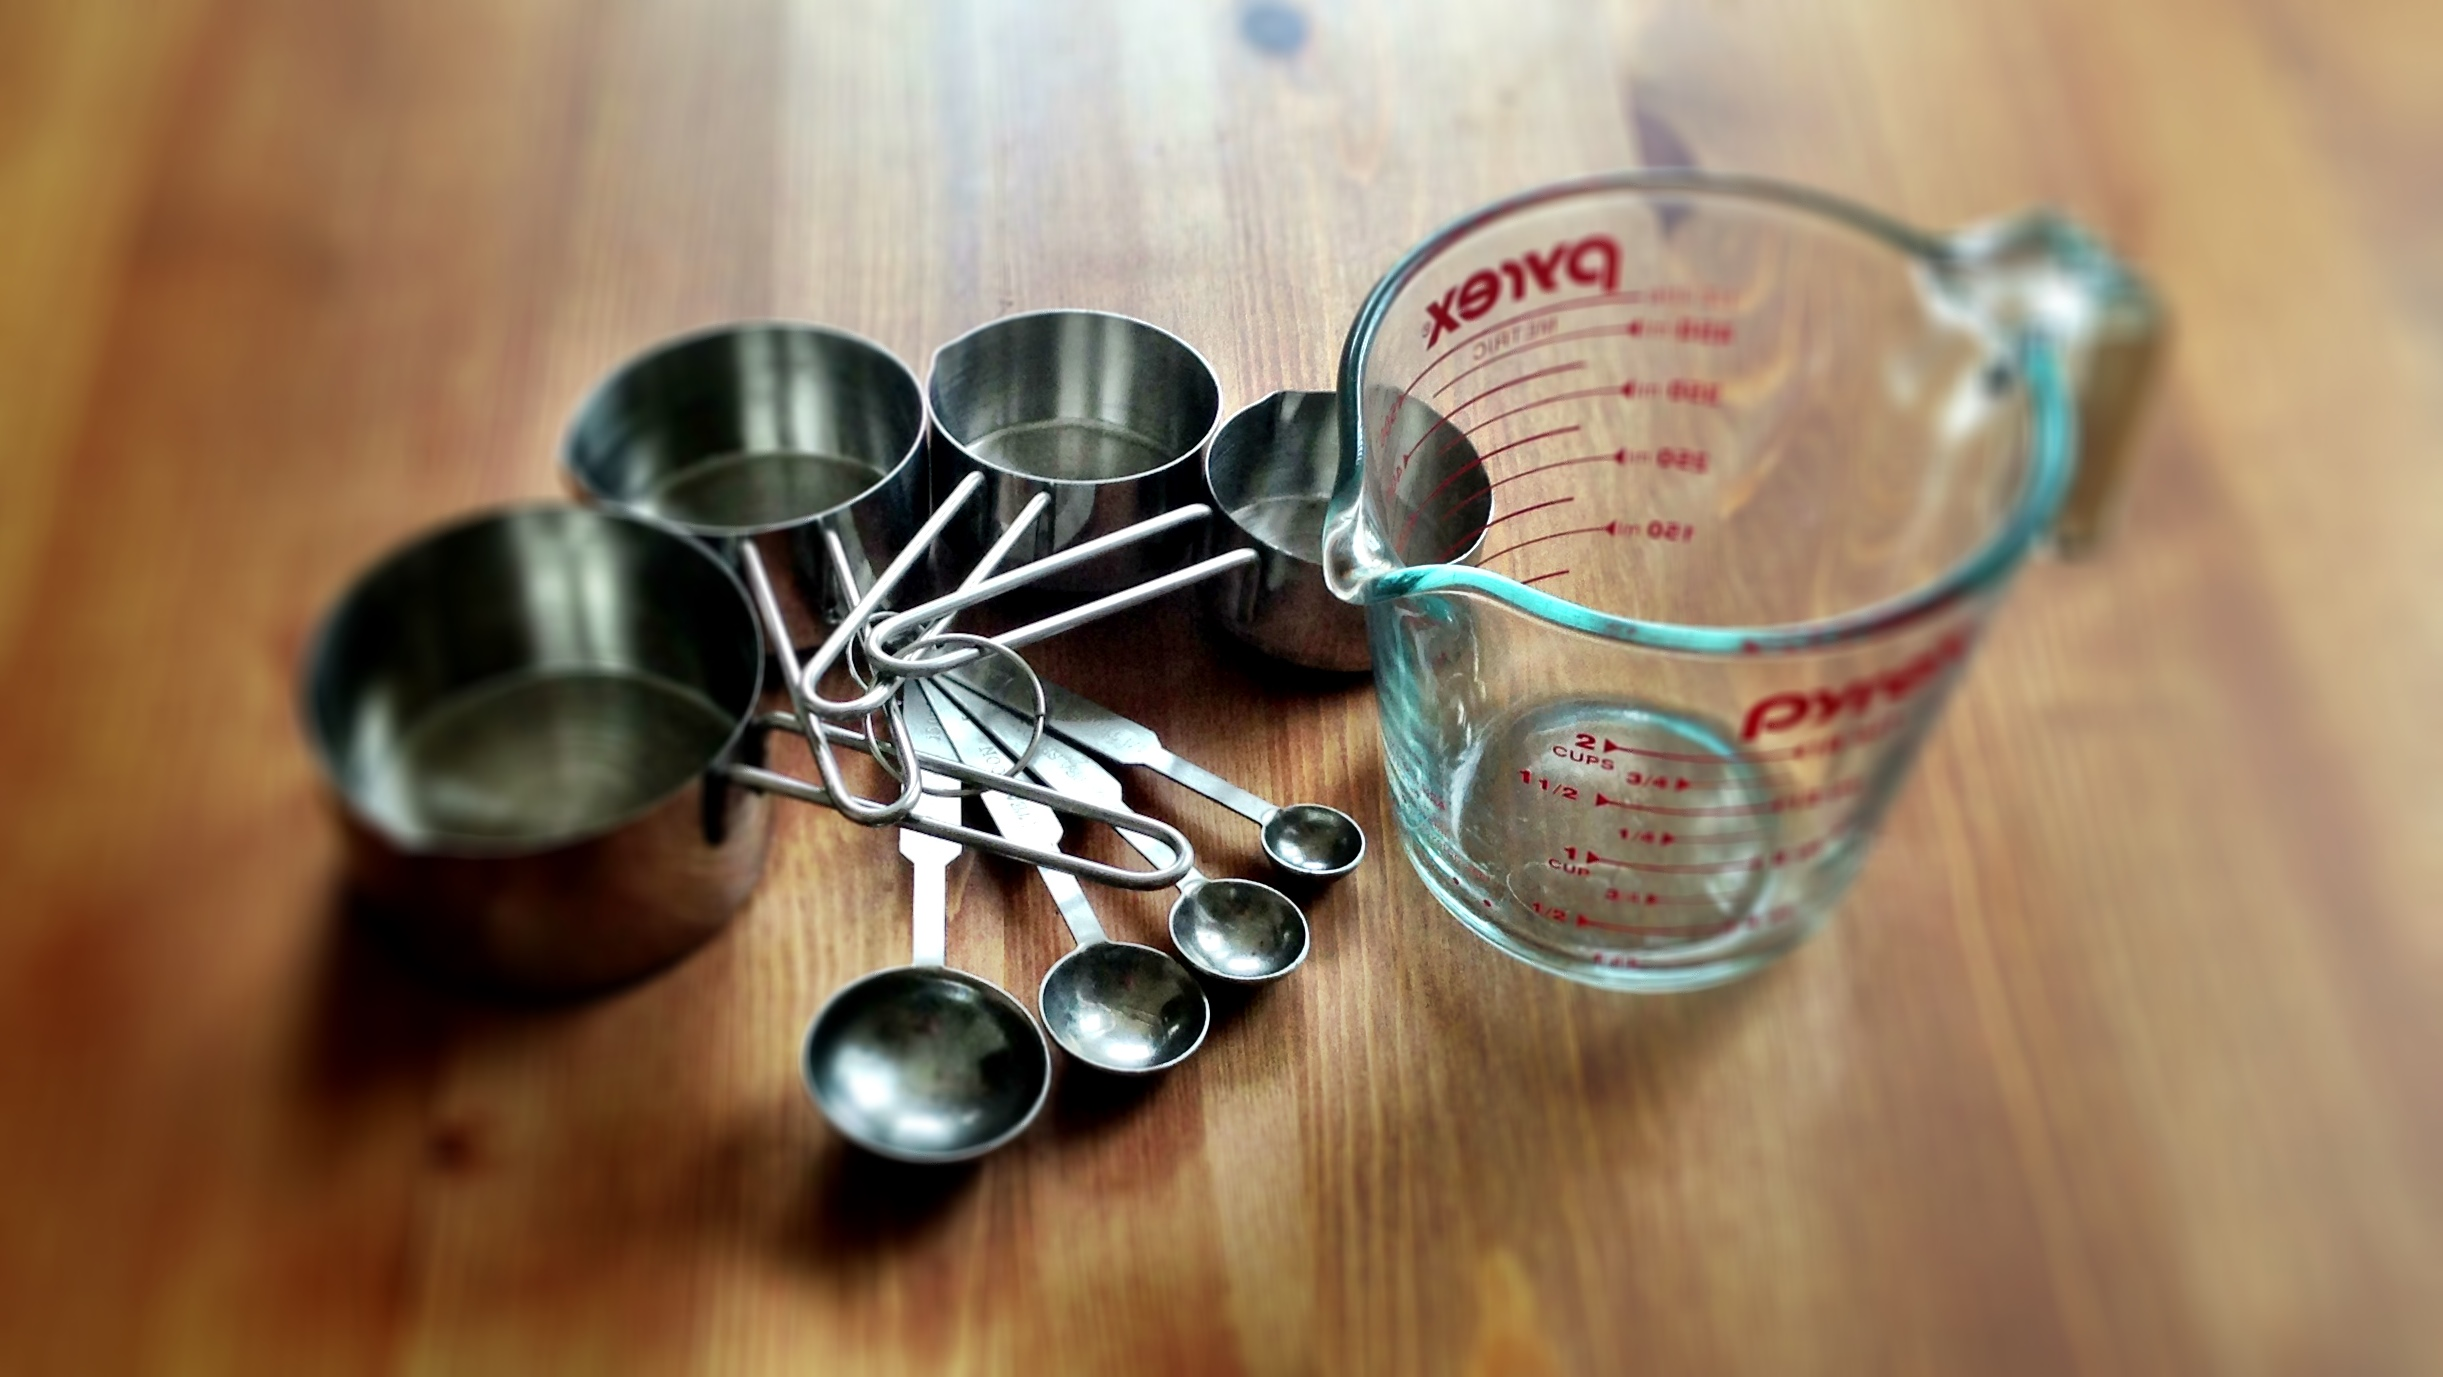 Bring The Science Essentialytical Tools For Your Kitchen